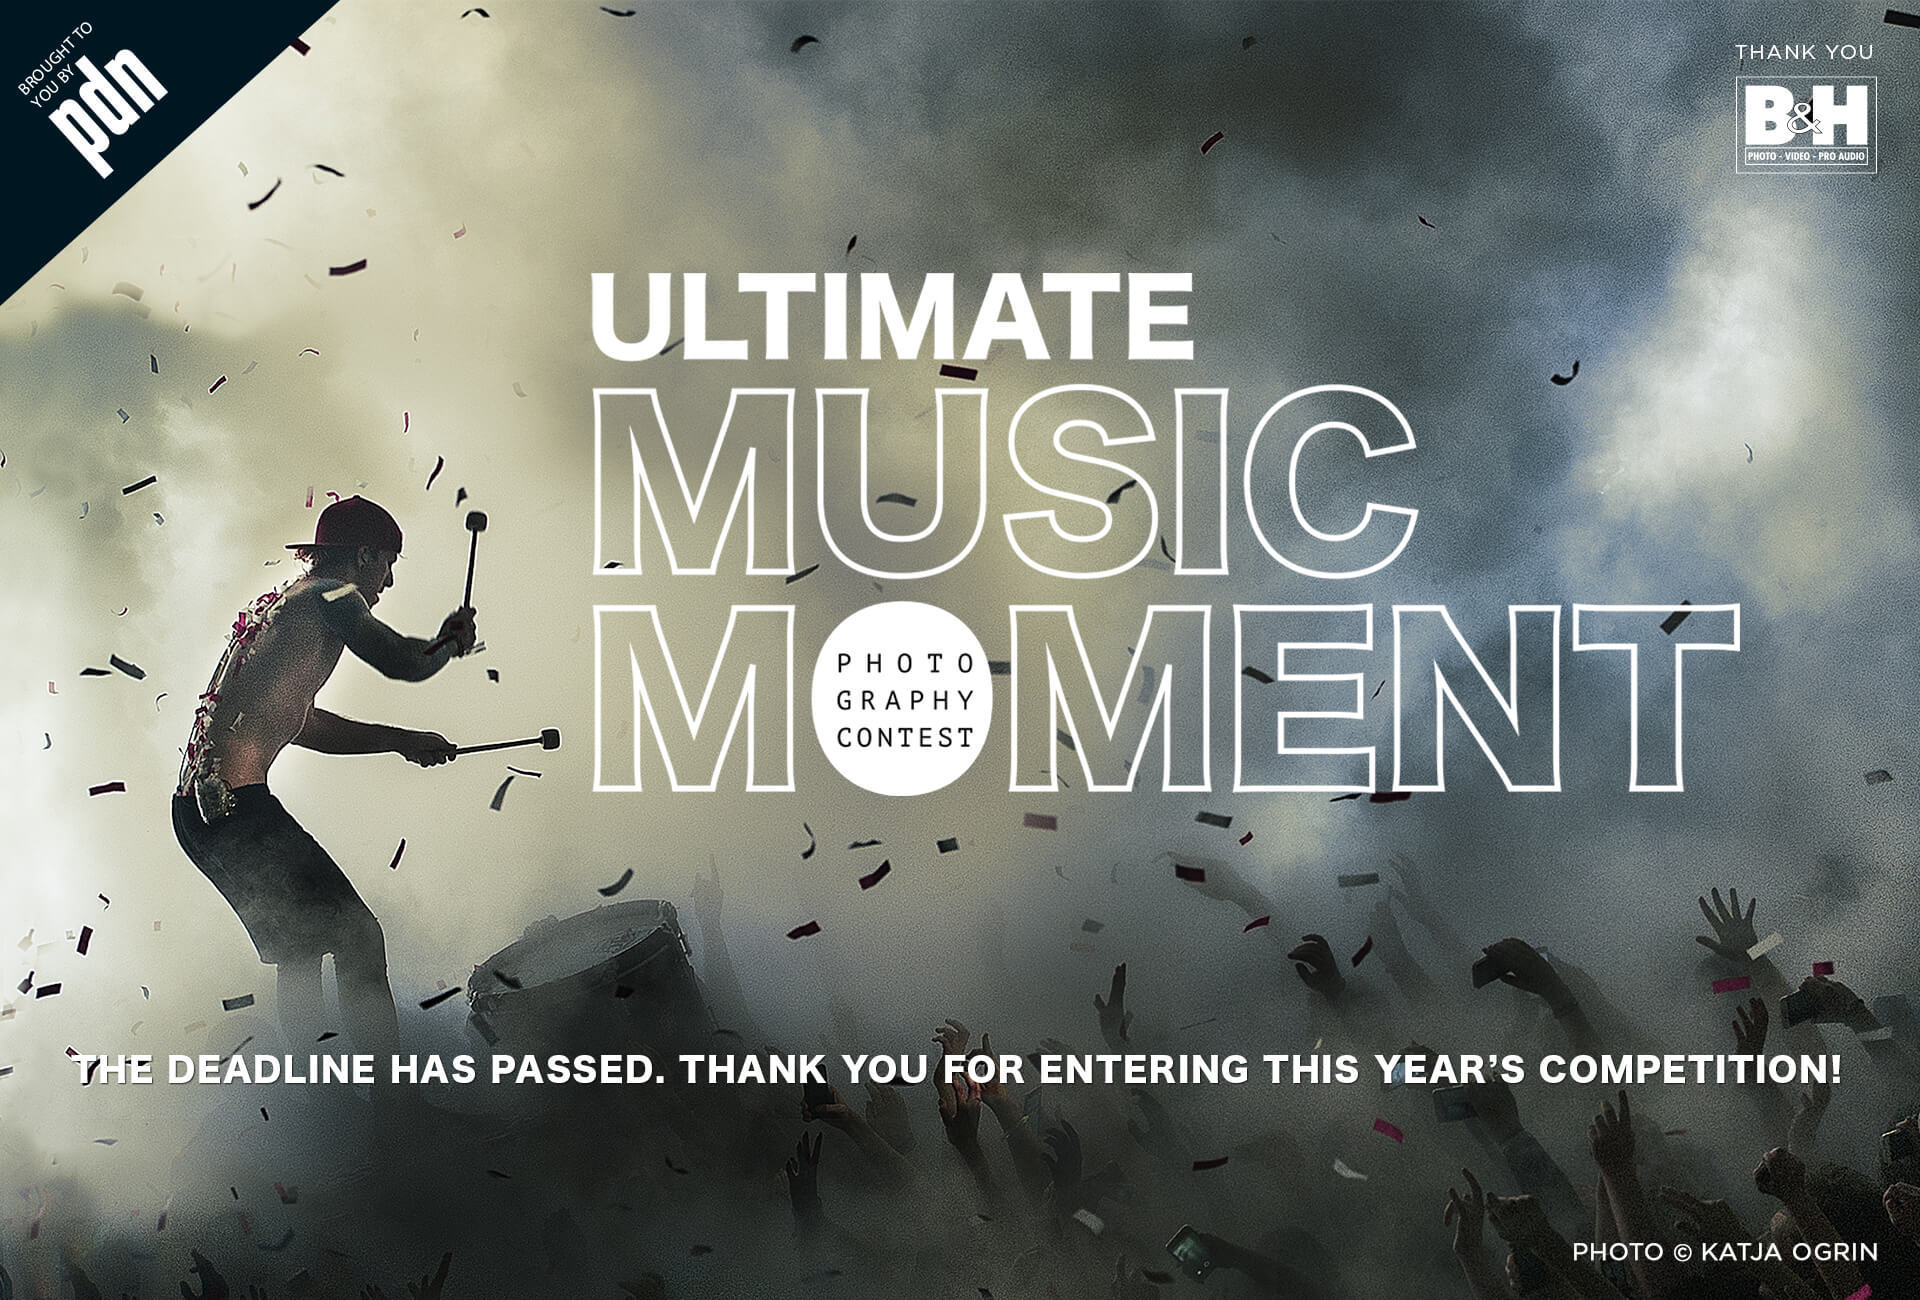 ULTIMATE MUSIC MOMENT